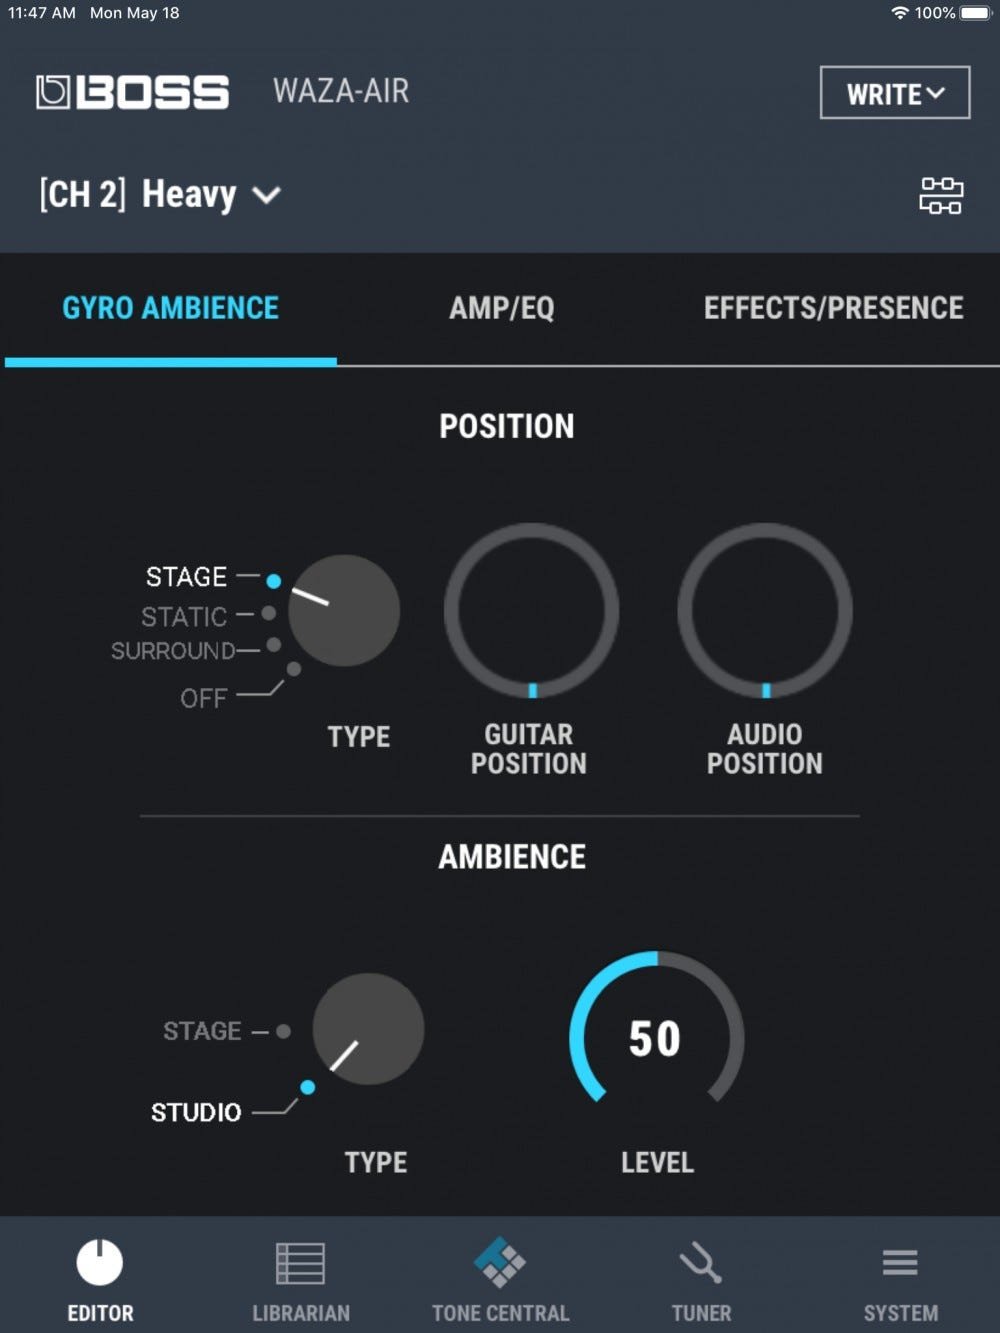 The gyro setting in the Waza-Air app